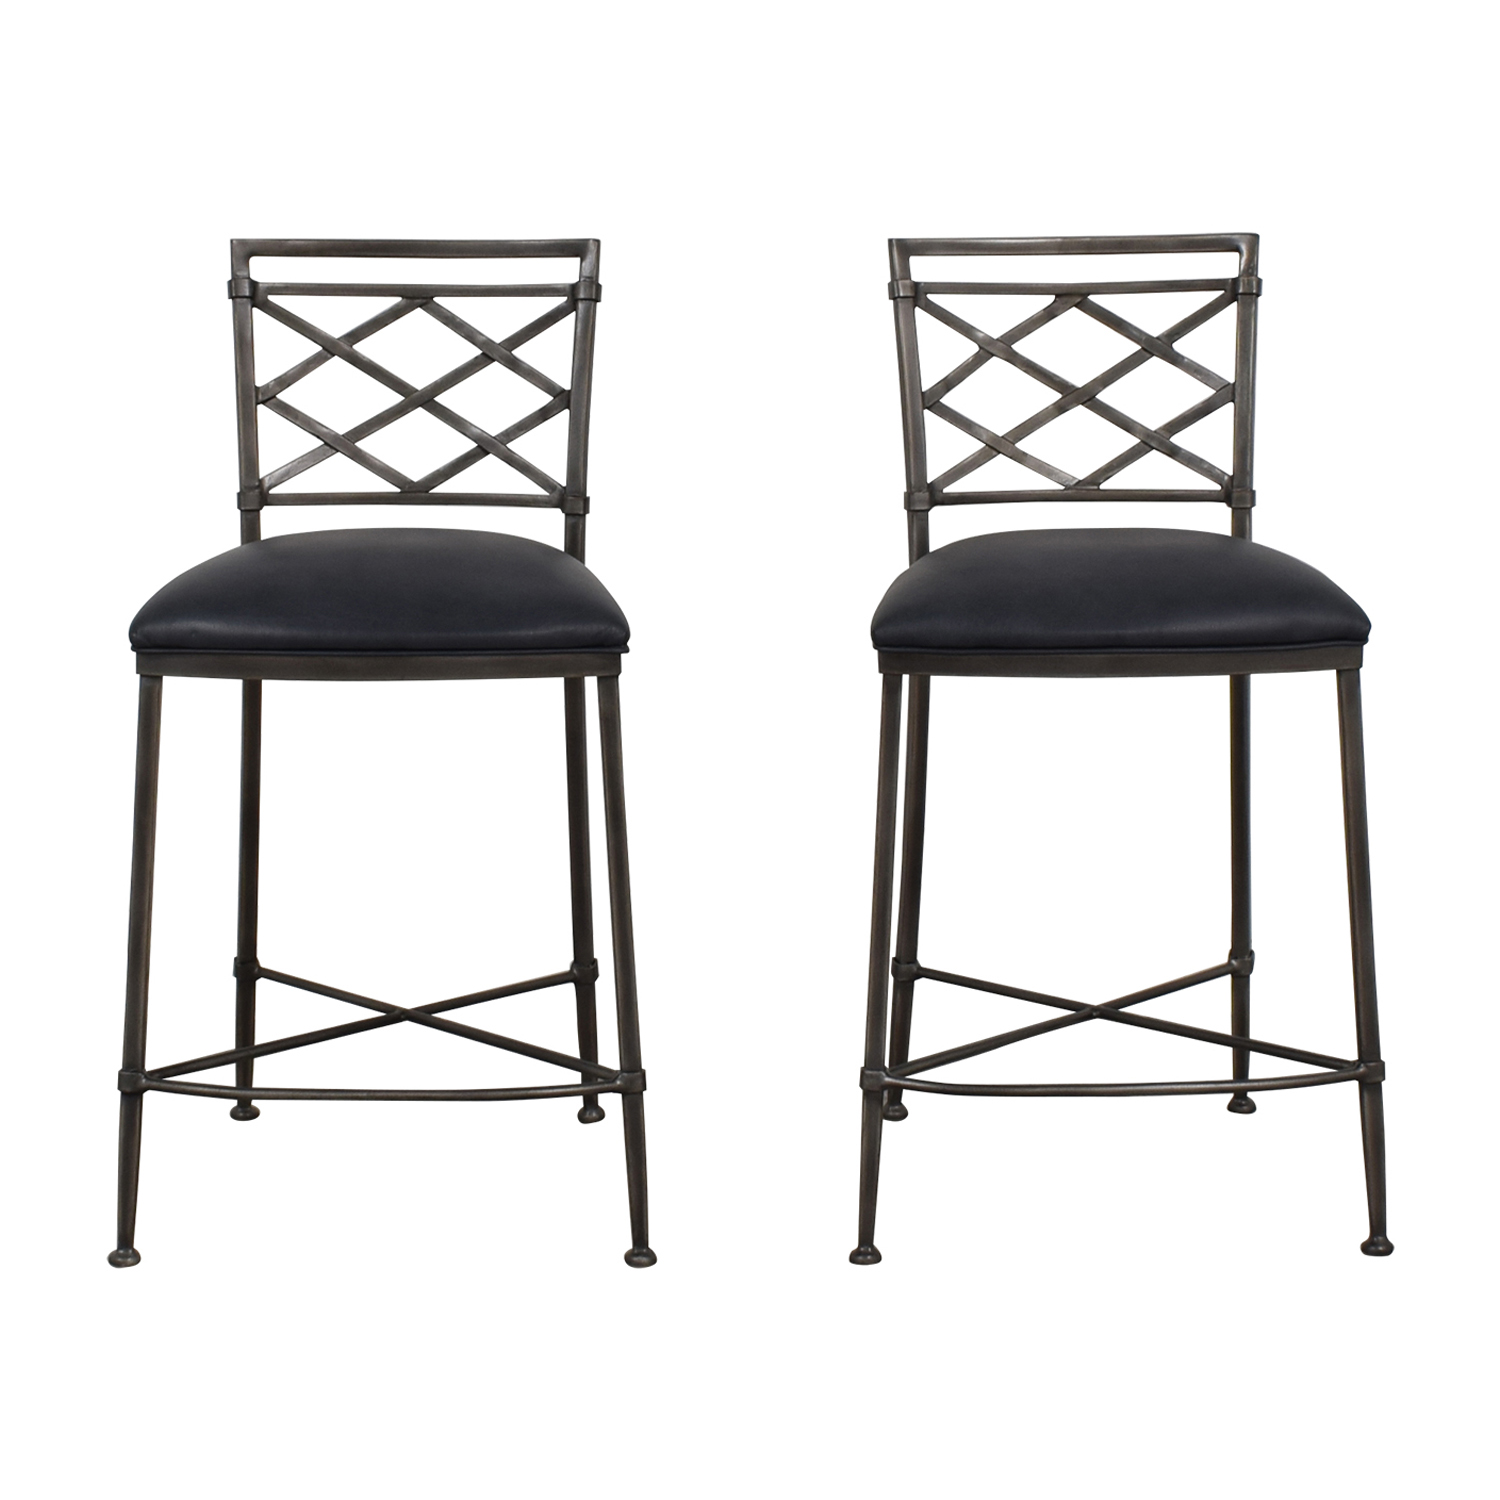 Ethan Allen Grey Bistro Chairs sale